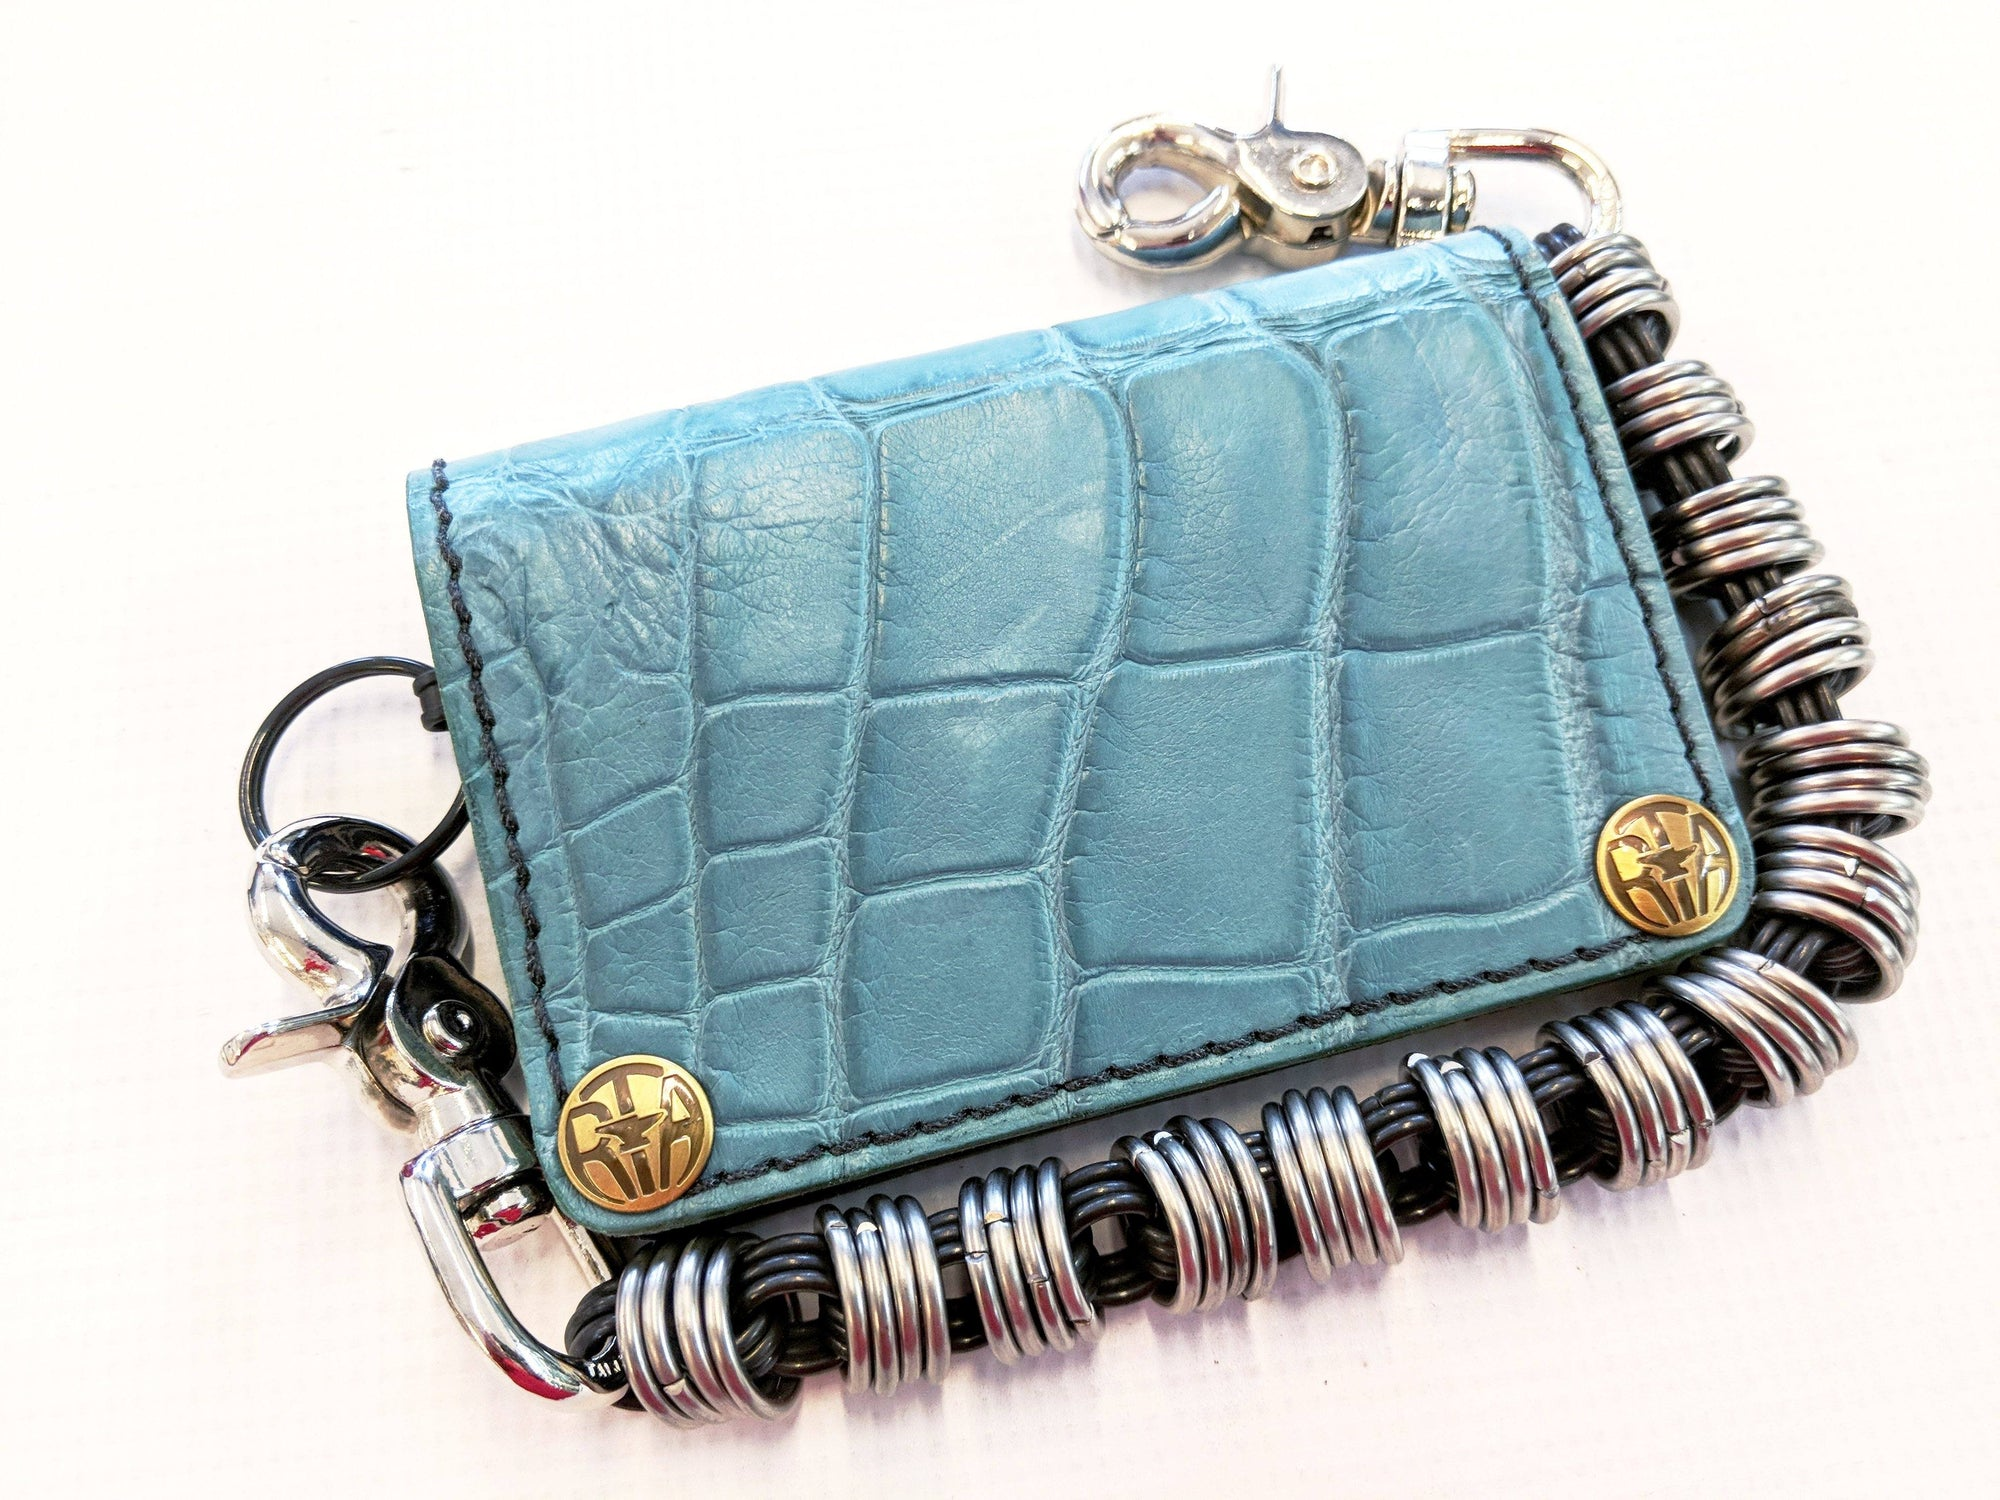 Mini Long Leather Chain Wallet - Turquoise Alligator 3